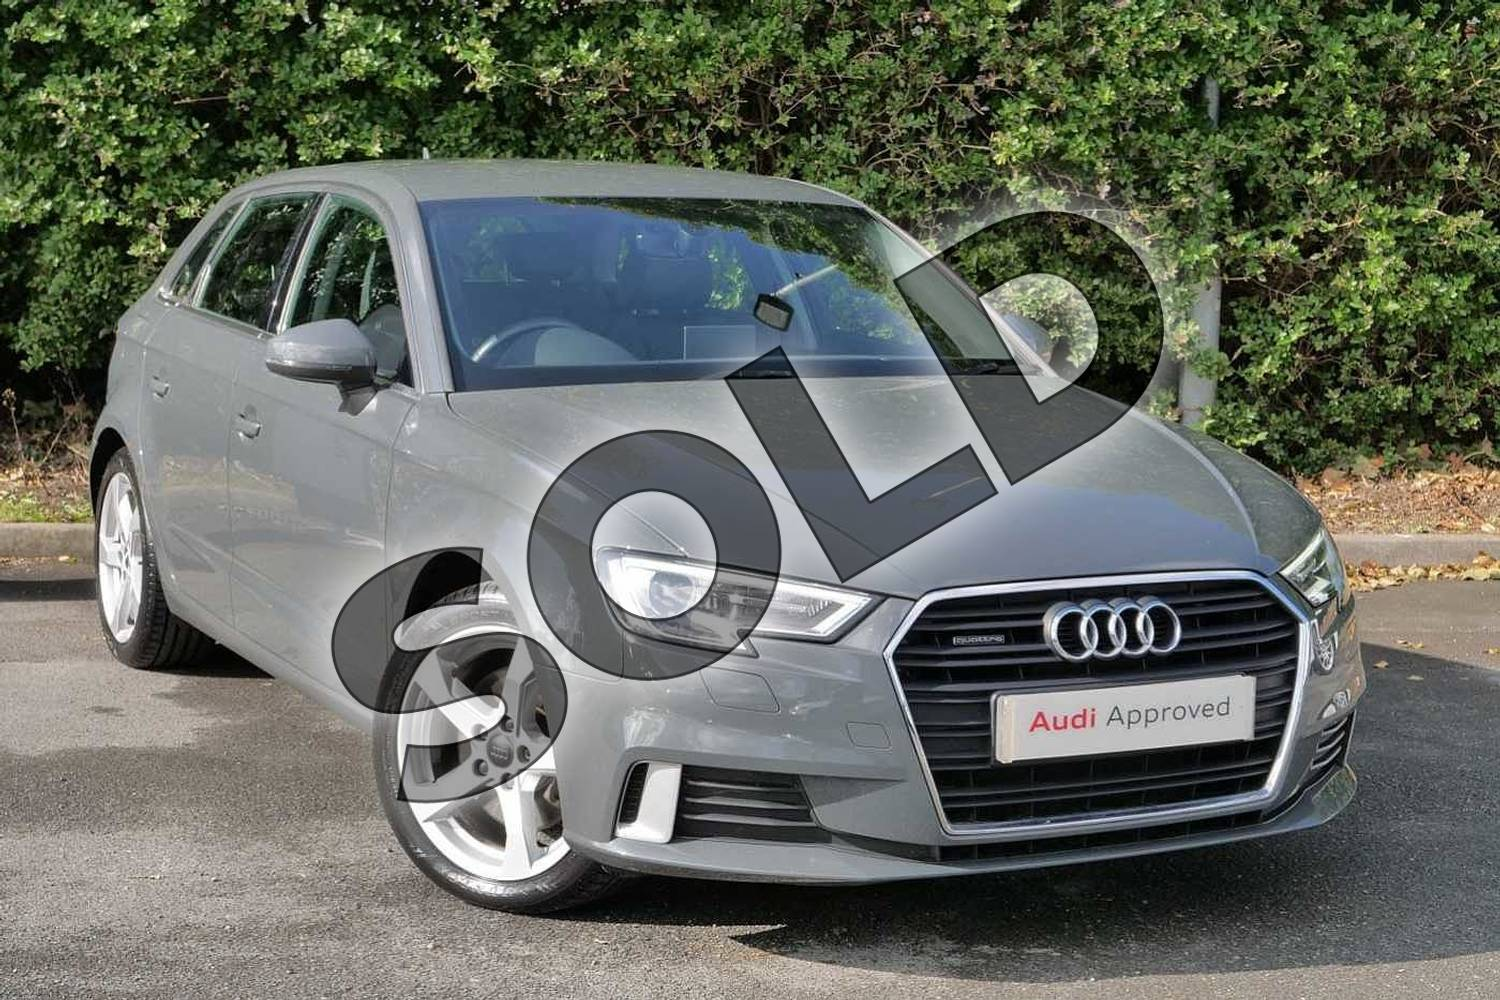 2016 Audi A3 Sportback 2.0 TFSI Quattro Sport 5dr S Tronic in Nano Grey Metallic at Worcester Audi